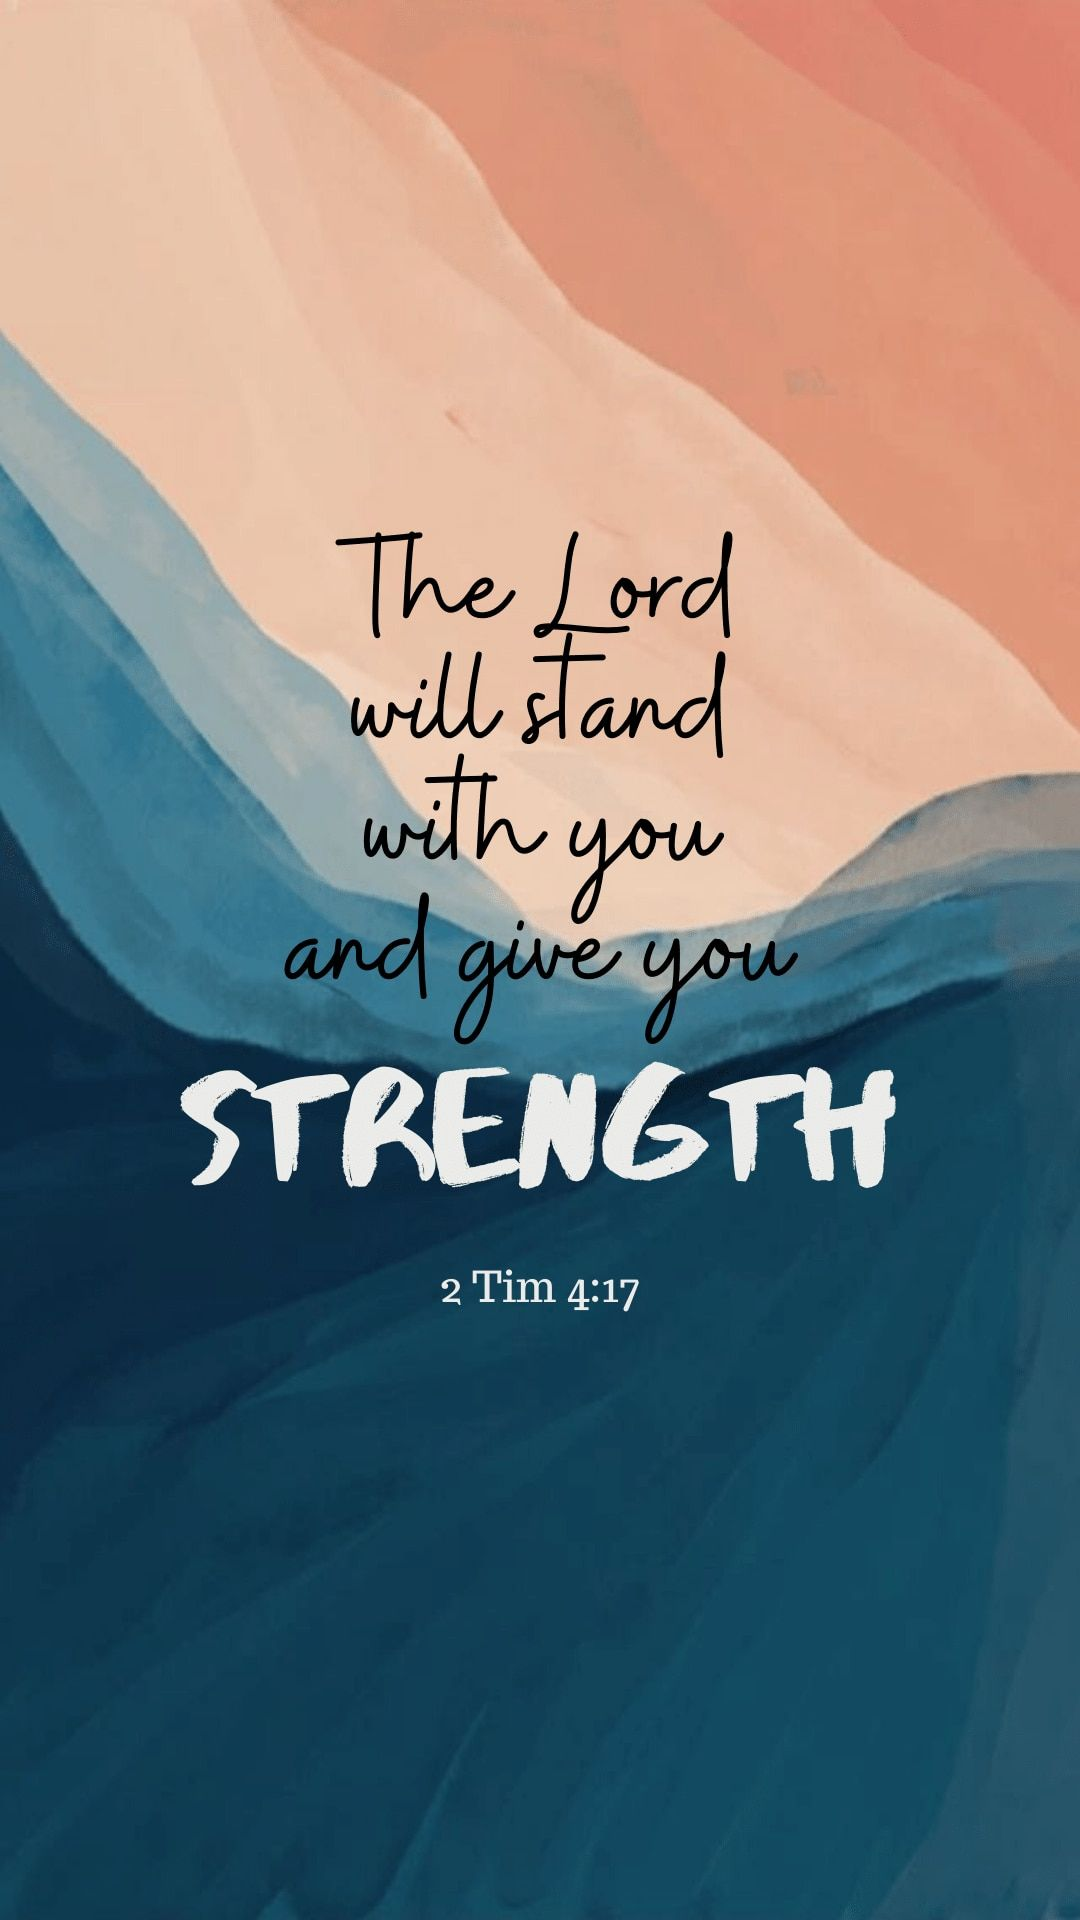 Encouraging Quotes and Bible Verses Wallpapers